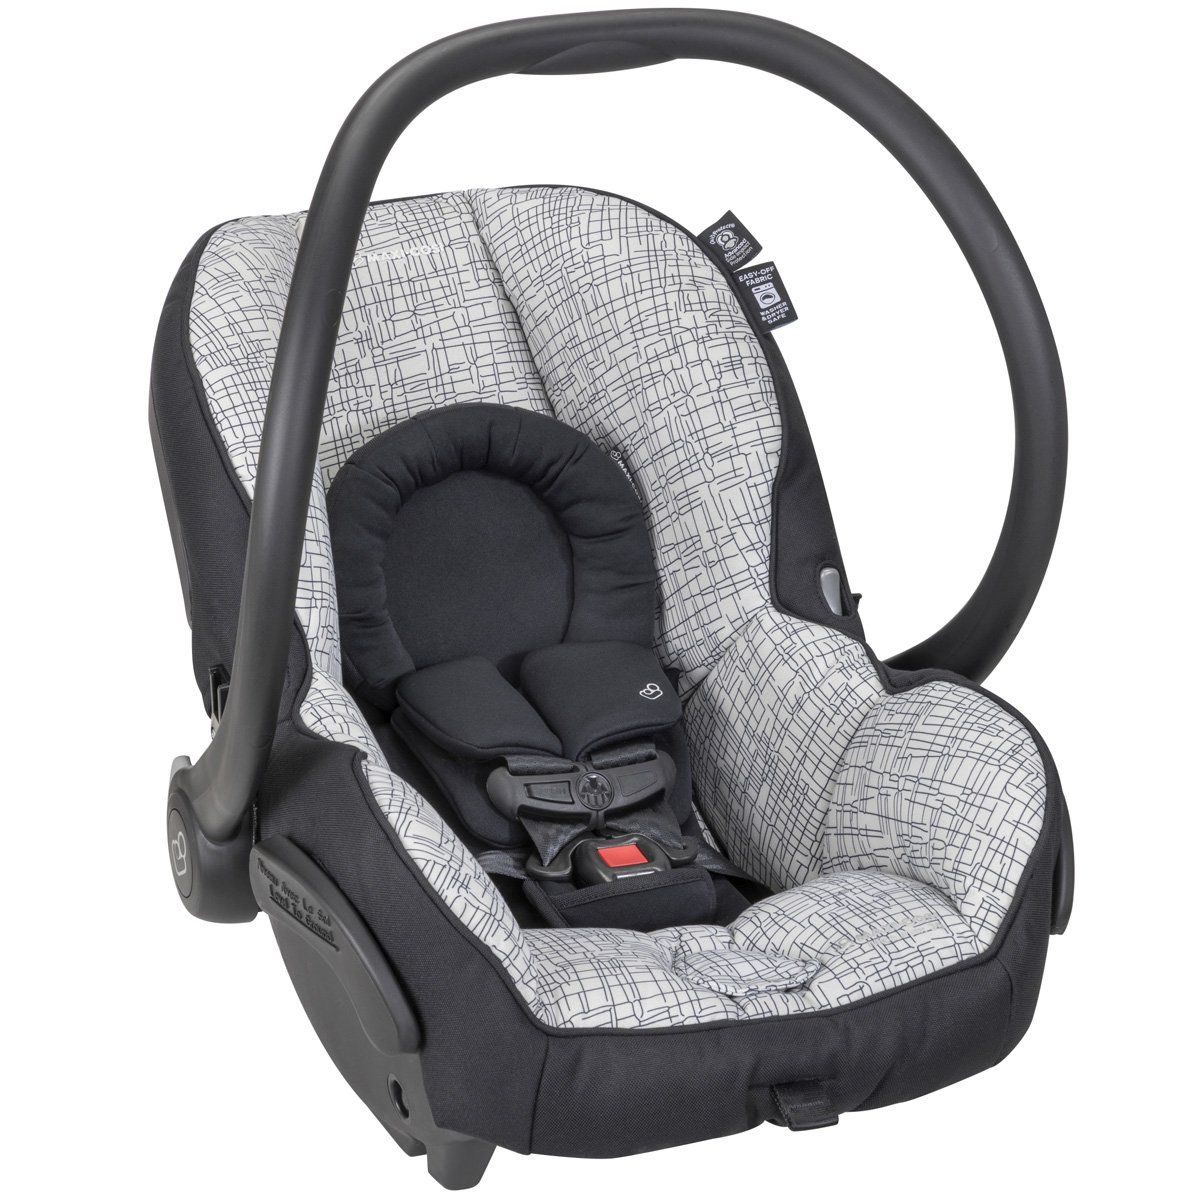 Maxi Cosi Mico Max Infant Car Seat Black Grid Best Selling Baby